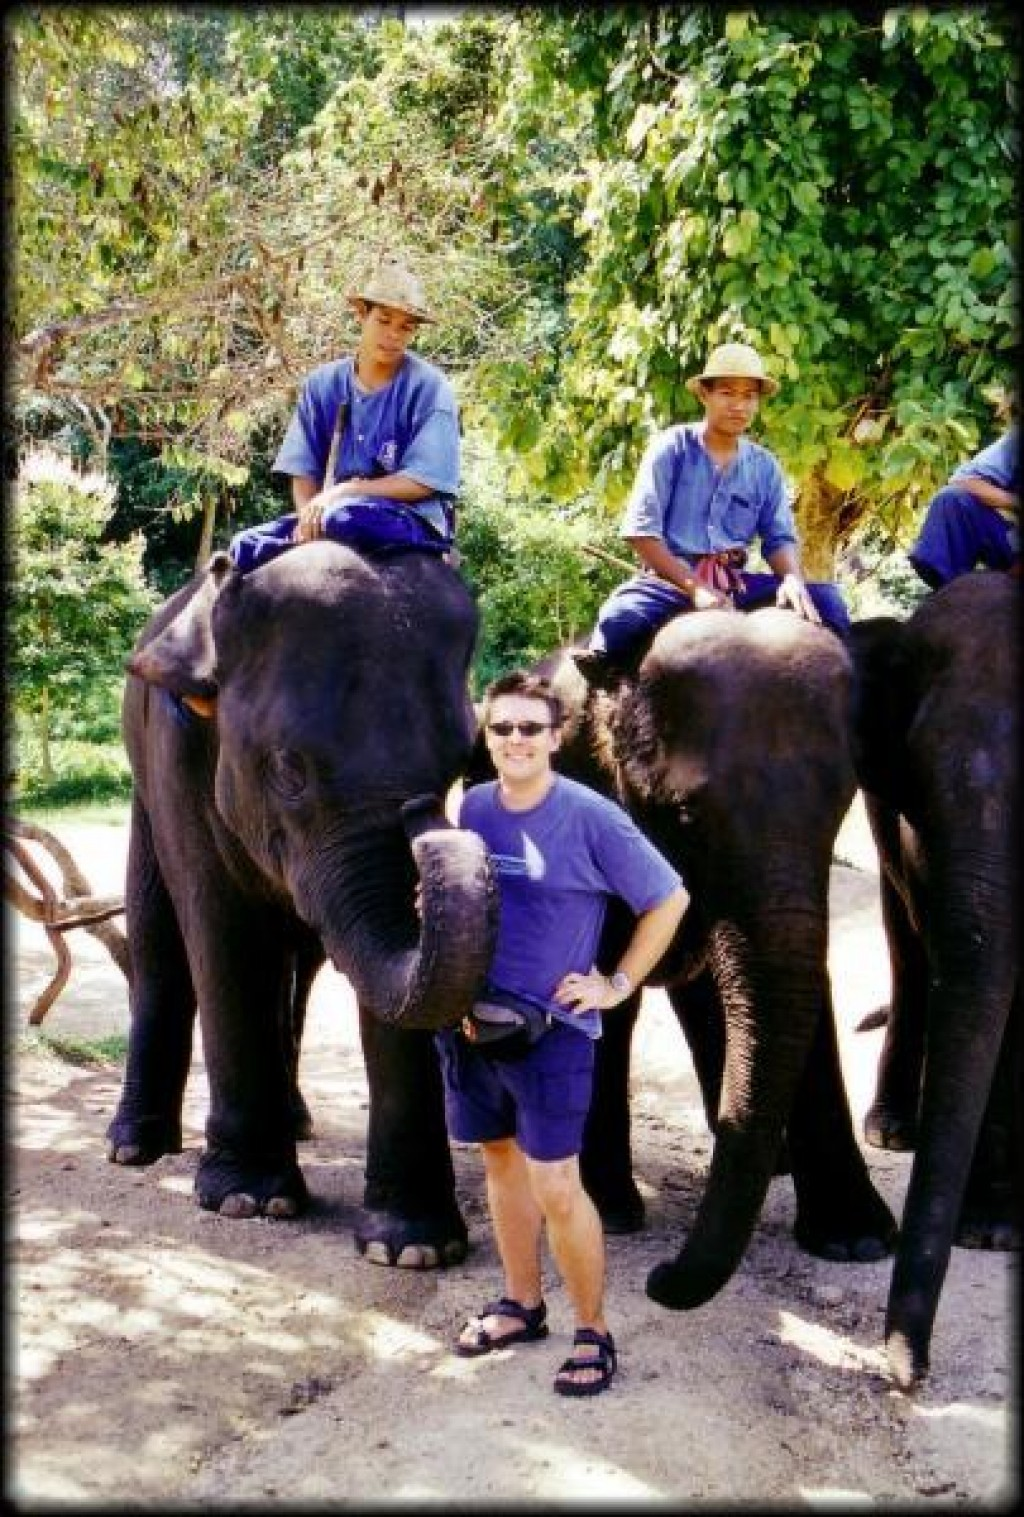 Chiang Mai is an inexpensive but fun destination in Northern Thailand.